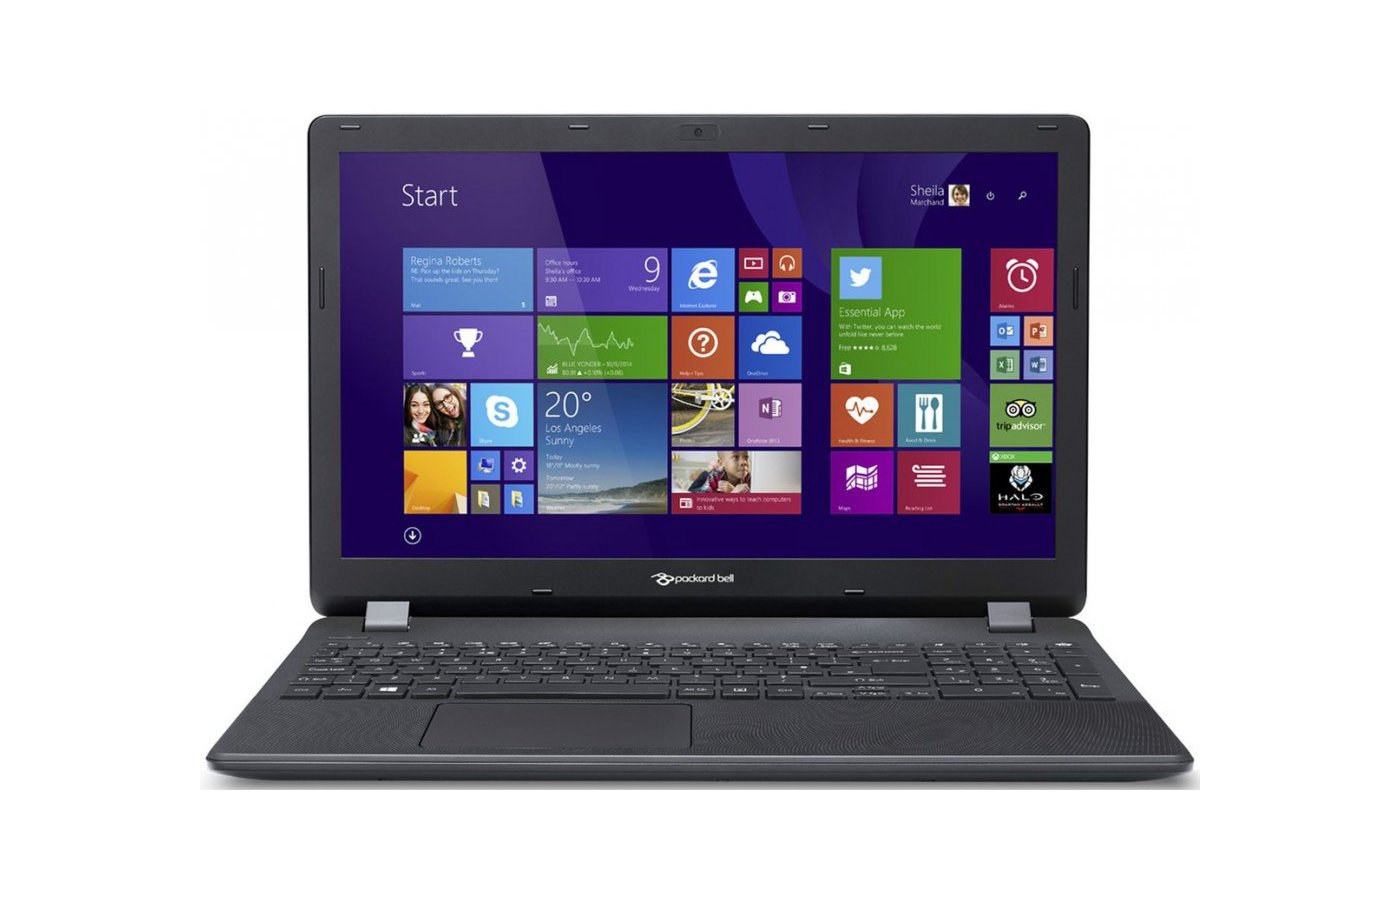 Ноутбук Packard Bell ENTG81BA-C7ND /NX.C3YER.007/ intel N3050/2Gb/500Gb/15.6/WiFi/Win8